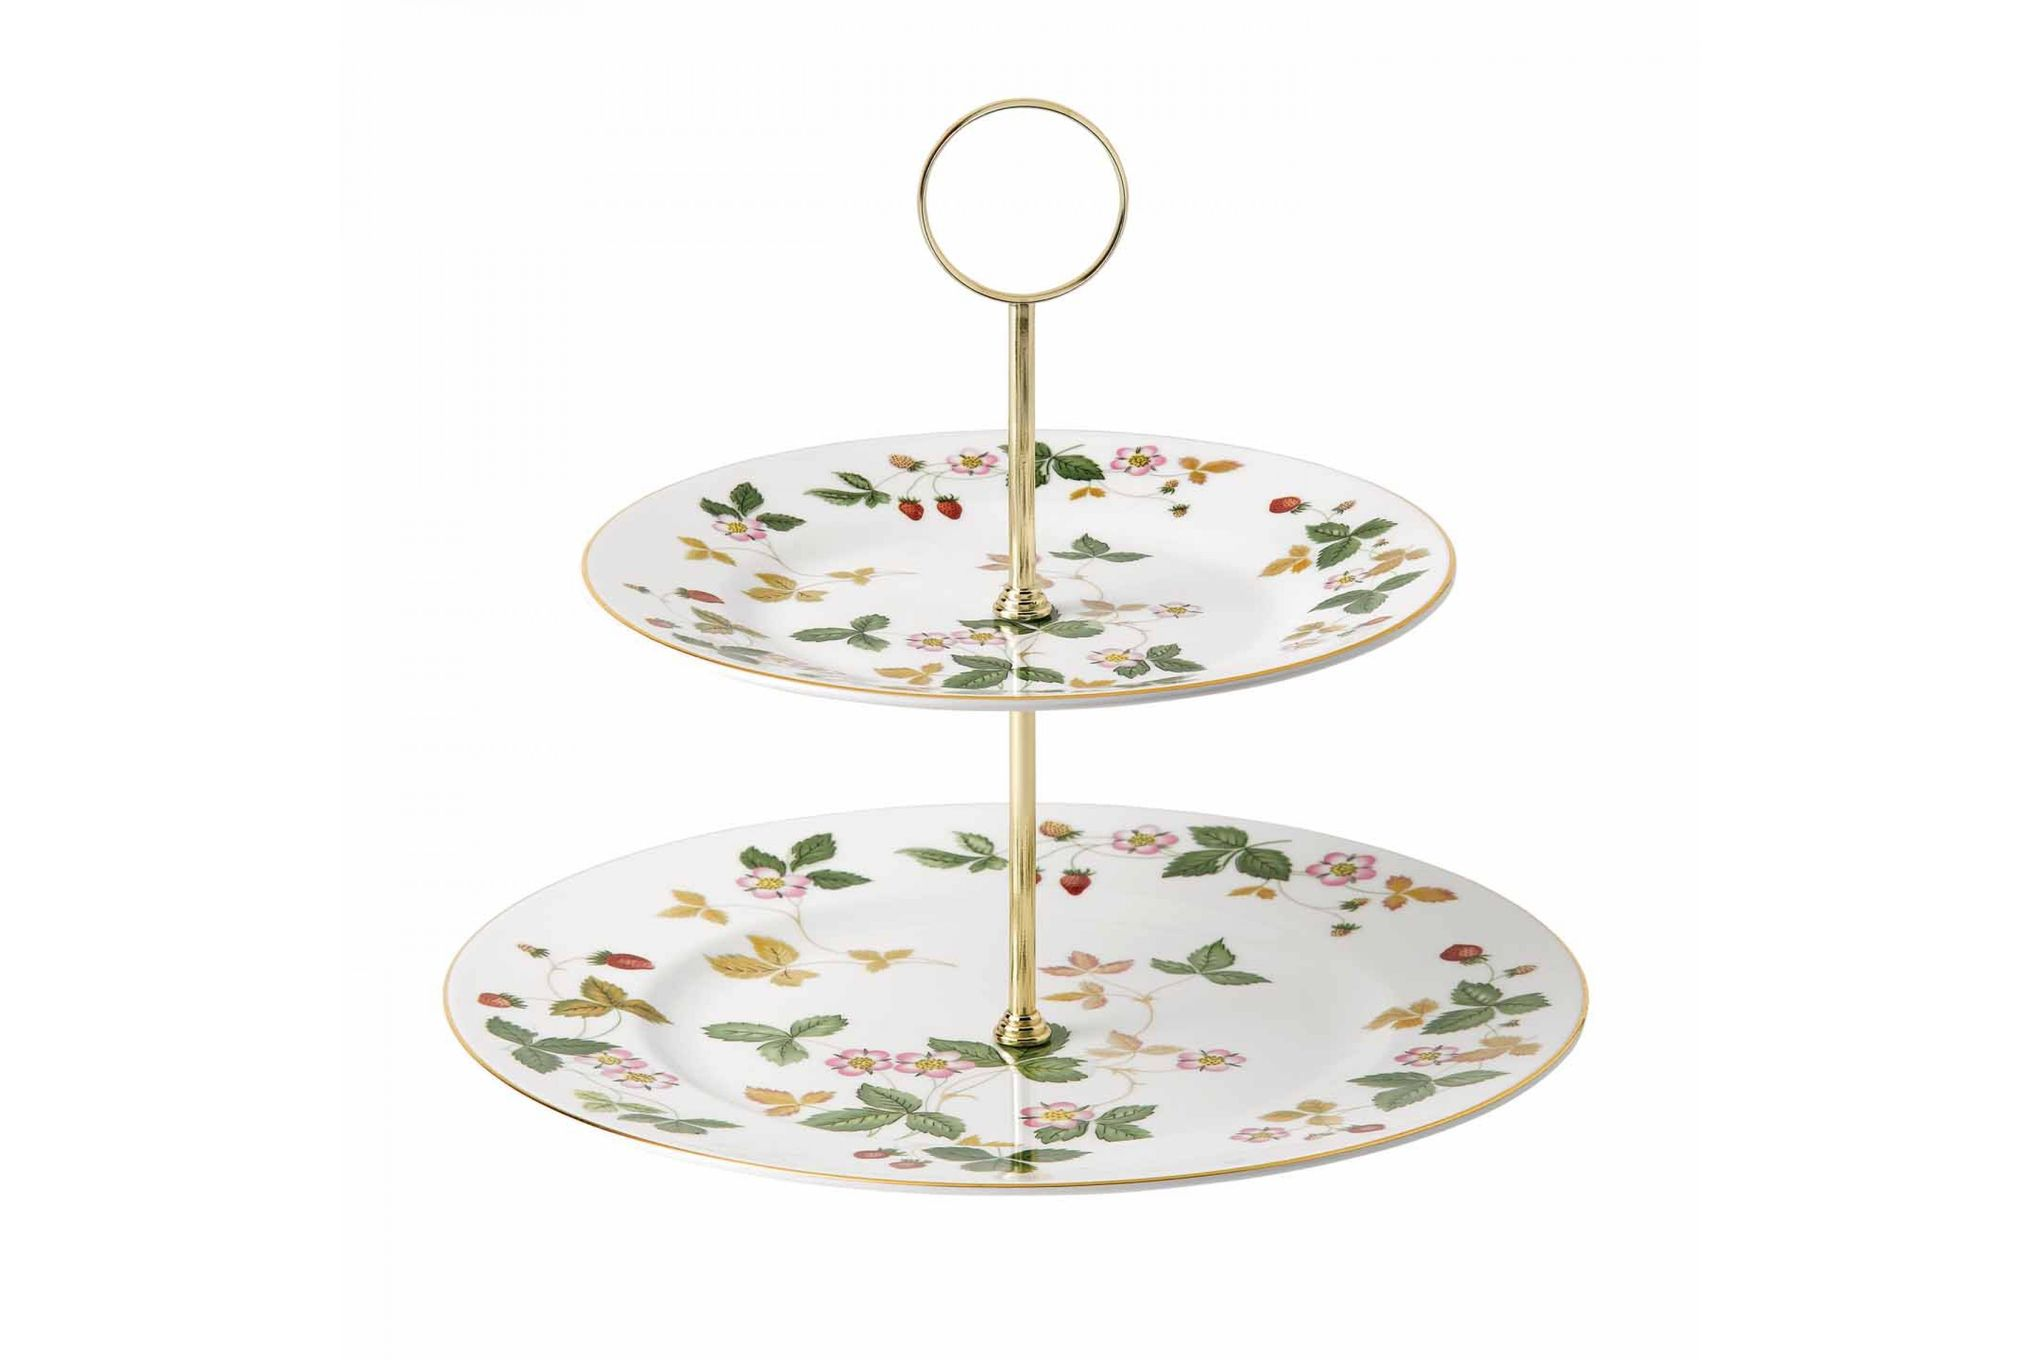 Wedgwood Wild Strawberry 2 Tier Cake Stand Gift Boxed thumb 1